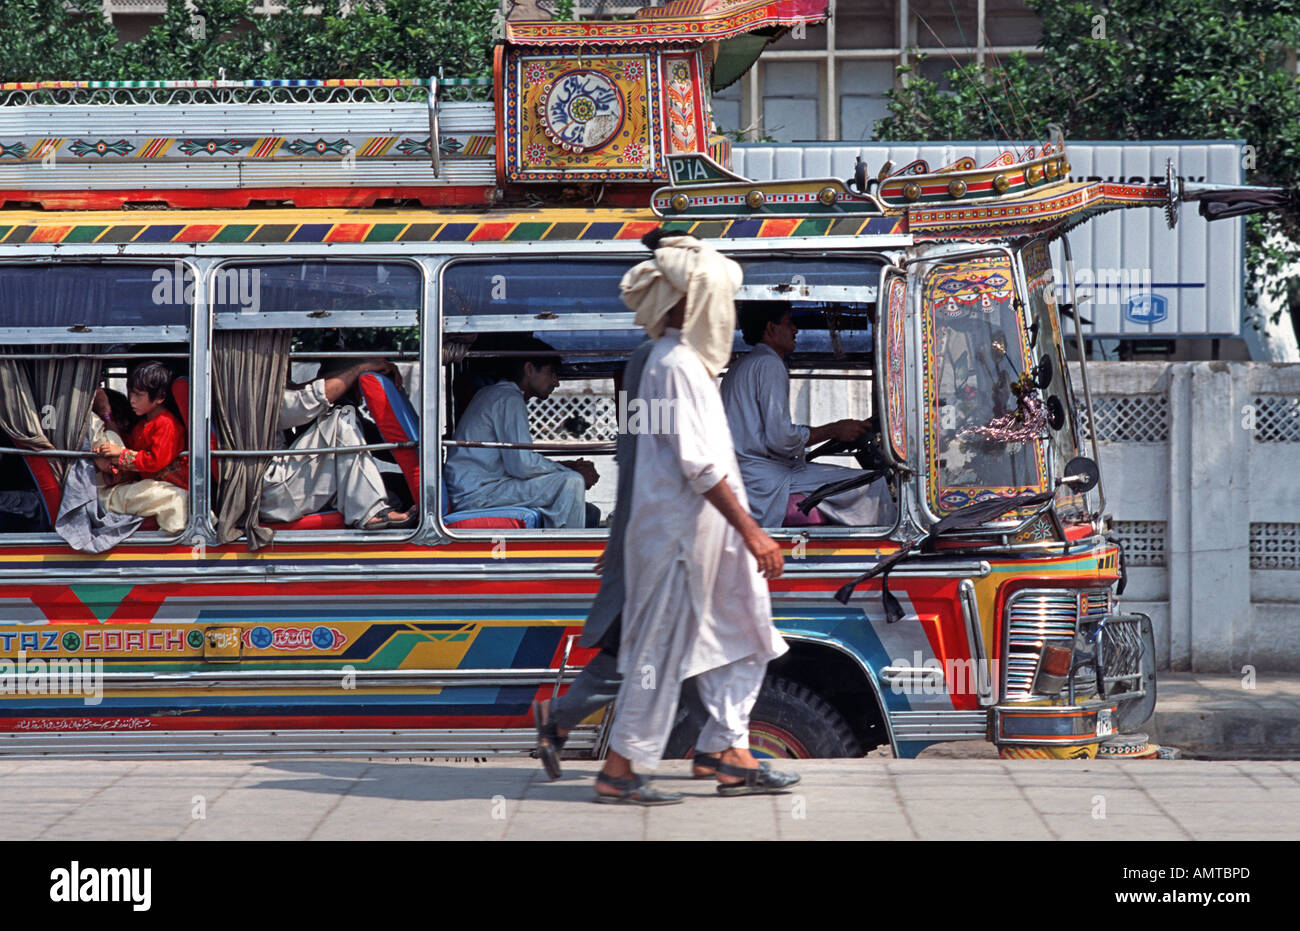 Urban street scene Pakistan Pedestriansbeing passedby a local bus on the streets of Peshawar Pakistan - Stock Image